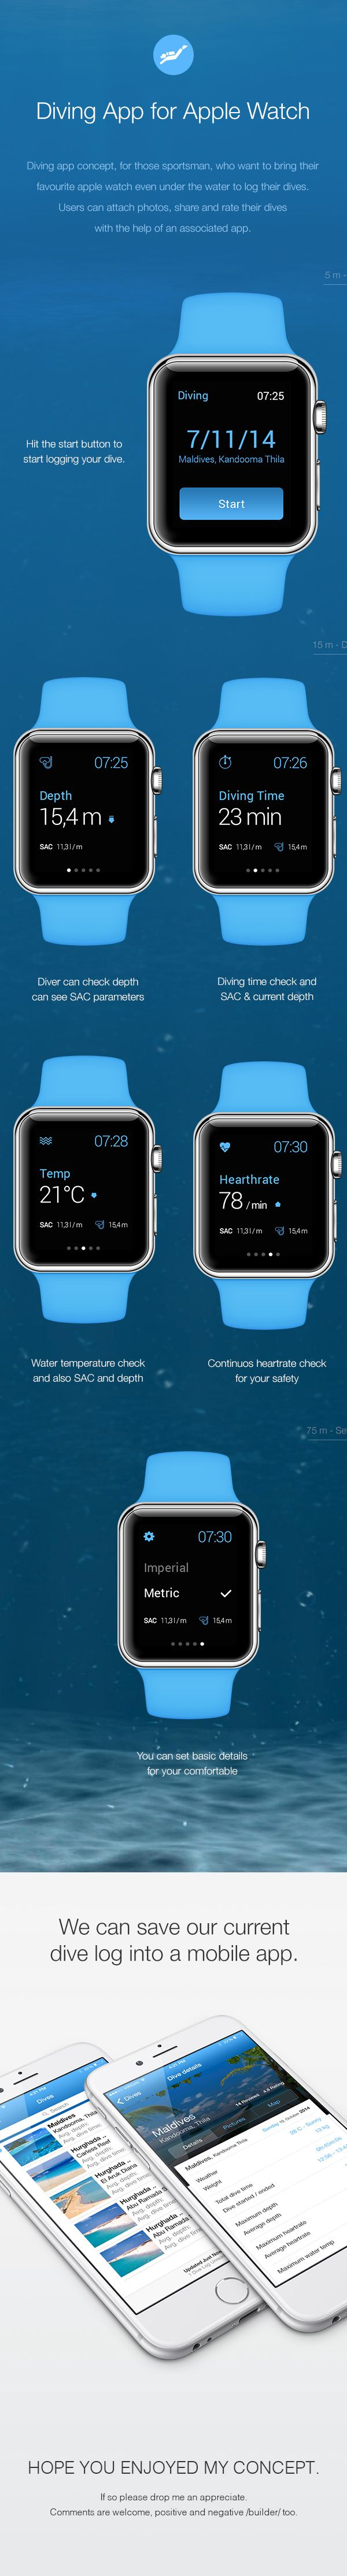 Apple watch diving app on Behance